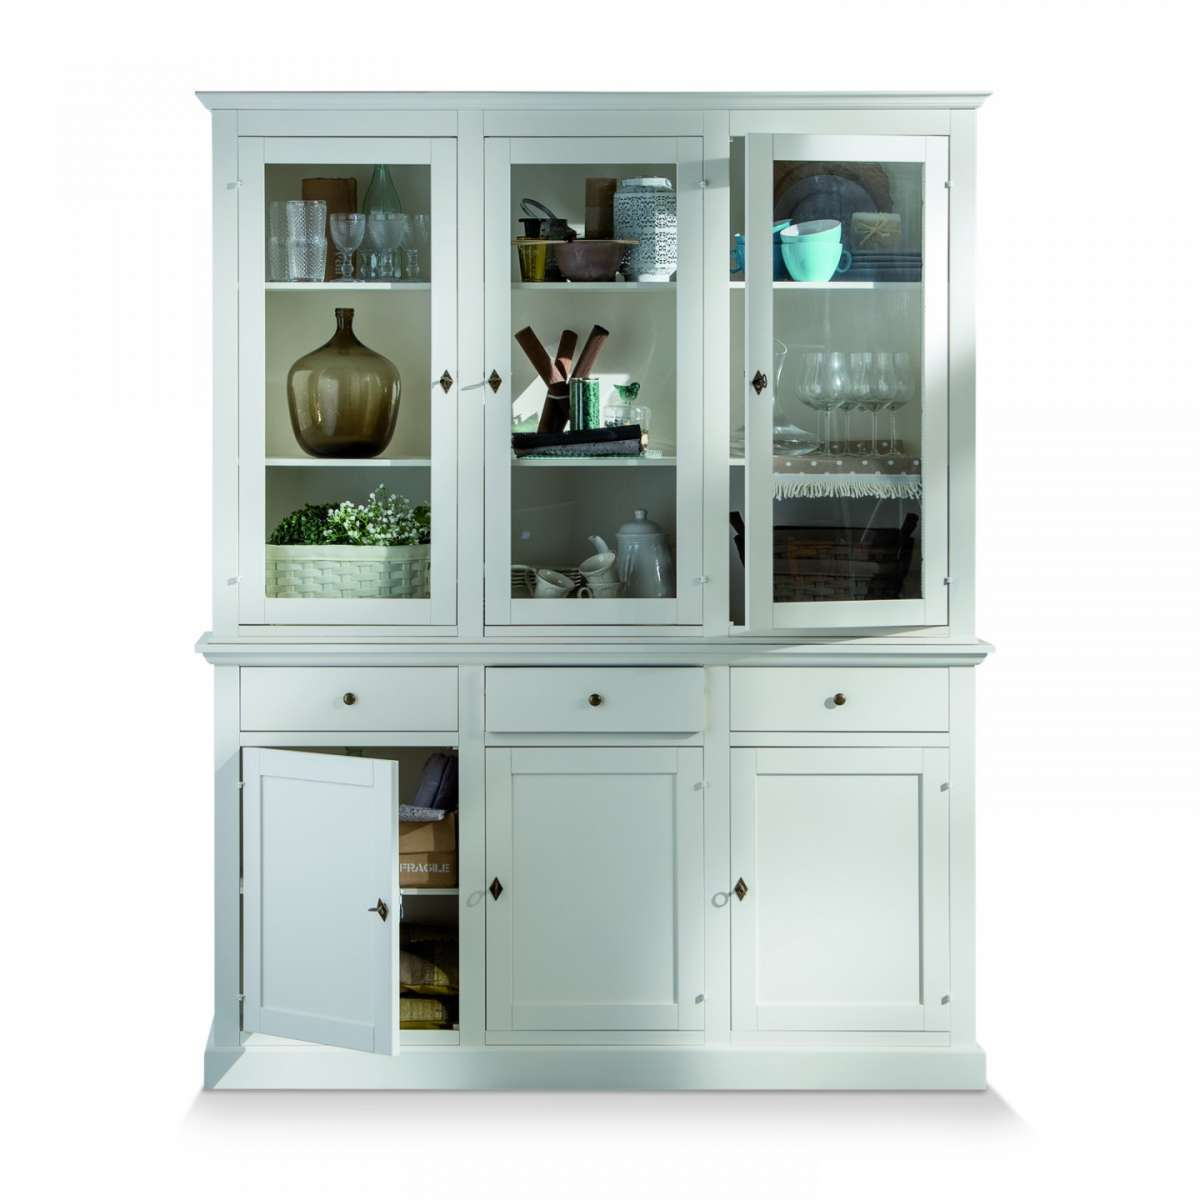 Camerette semeraro emejing cucine semeraro catalogo images home ideas - Cucina betty semeraro ...